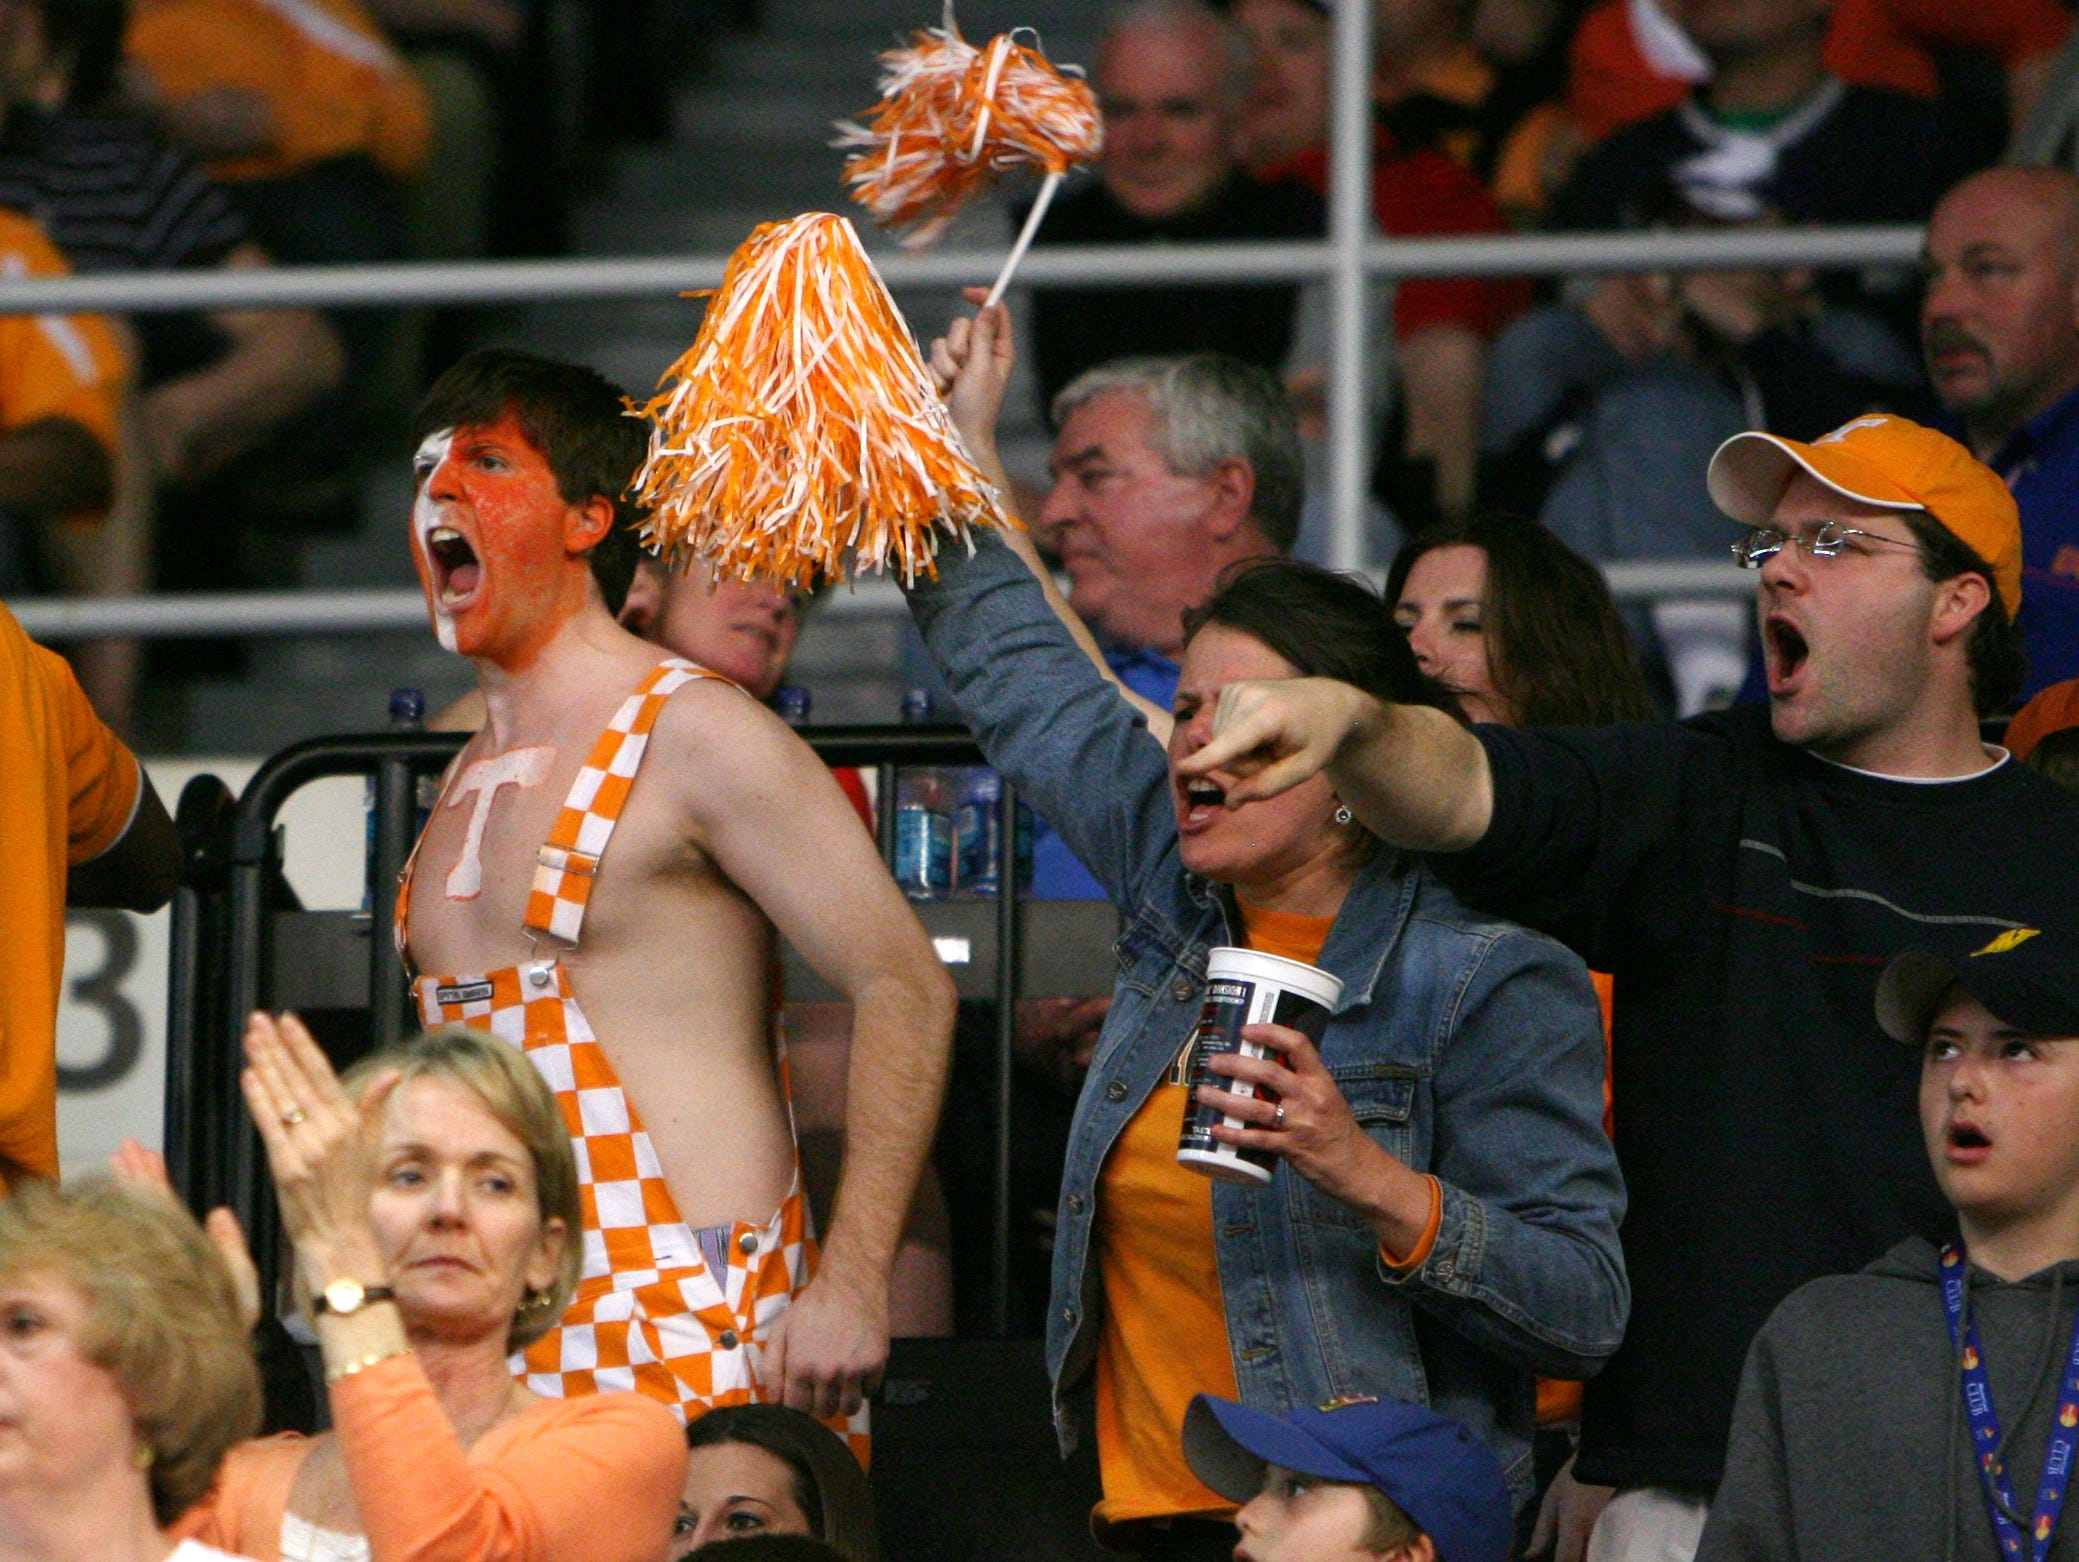 Tennessee fans cheer on the Vols as they take on the Ohio Bobcats during the second round of the NCAA tournament in Providence, R.I. Saturday, Mar. 20, 2010.